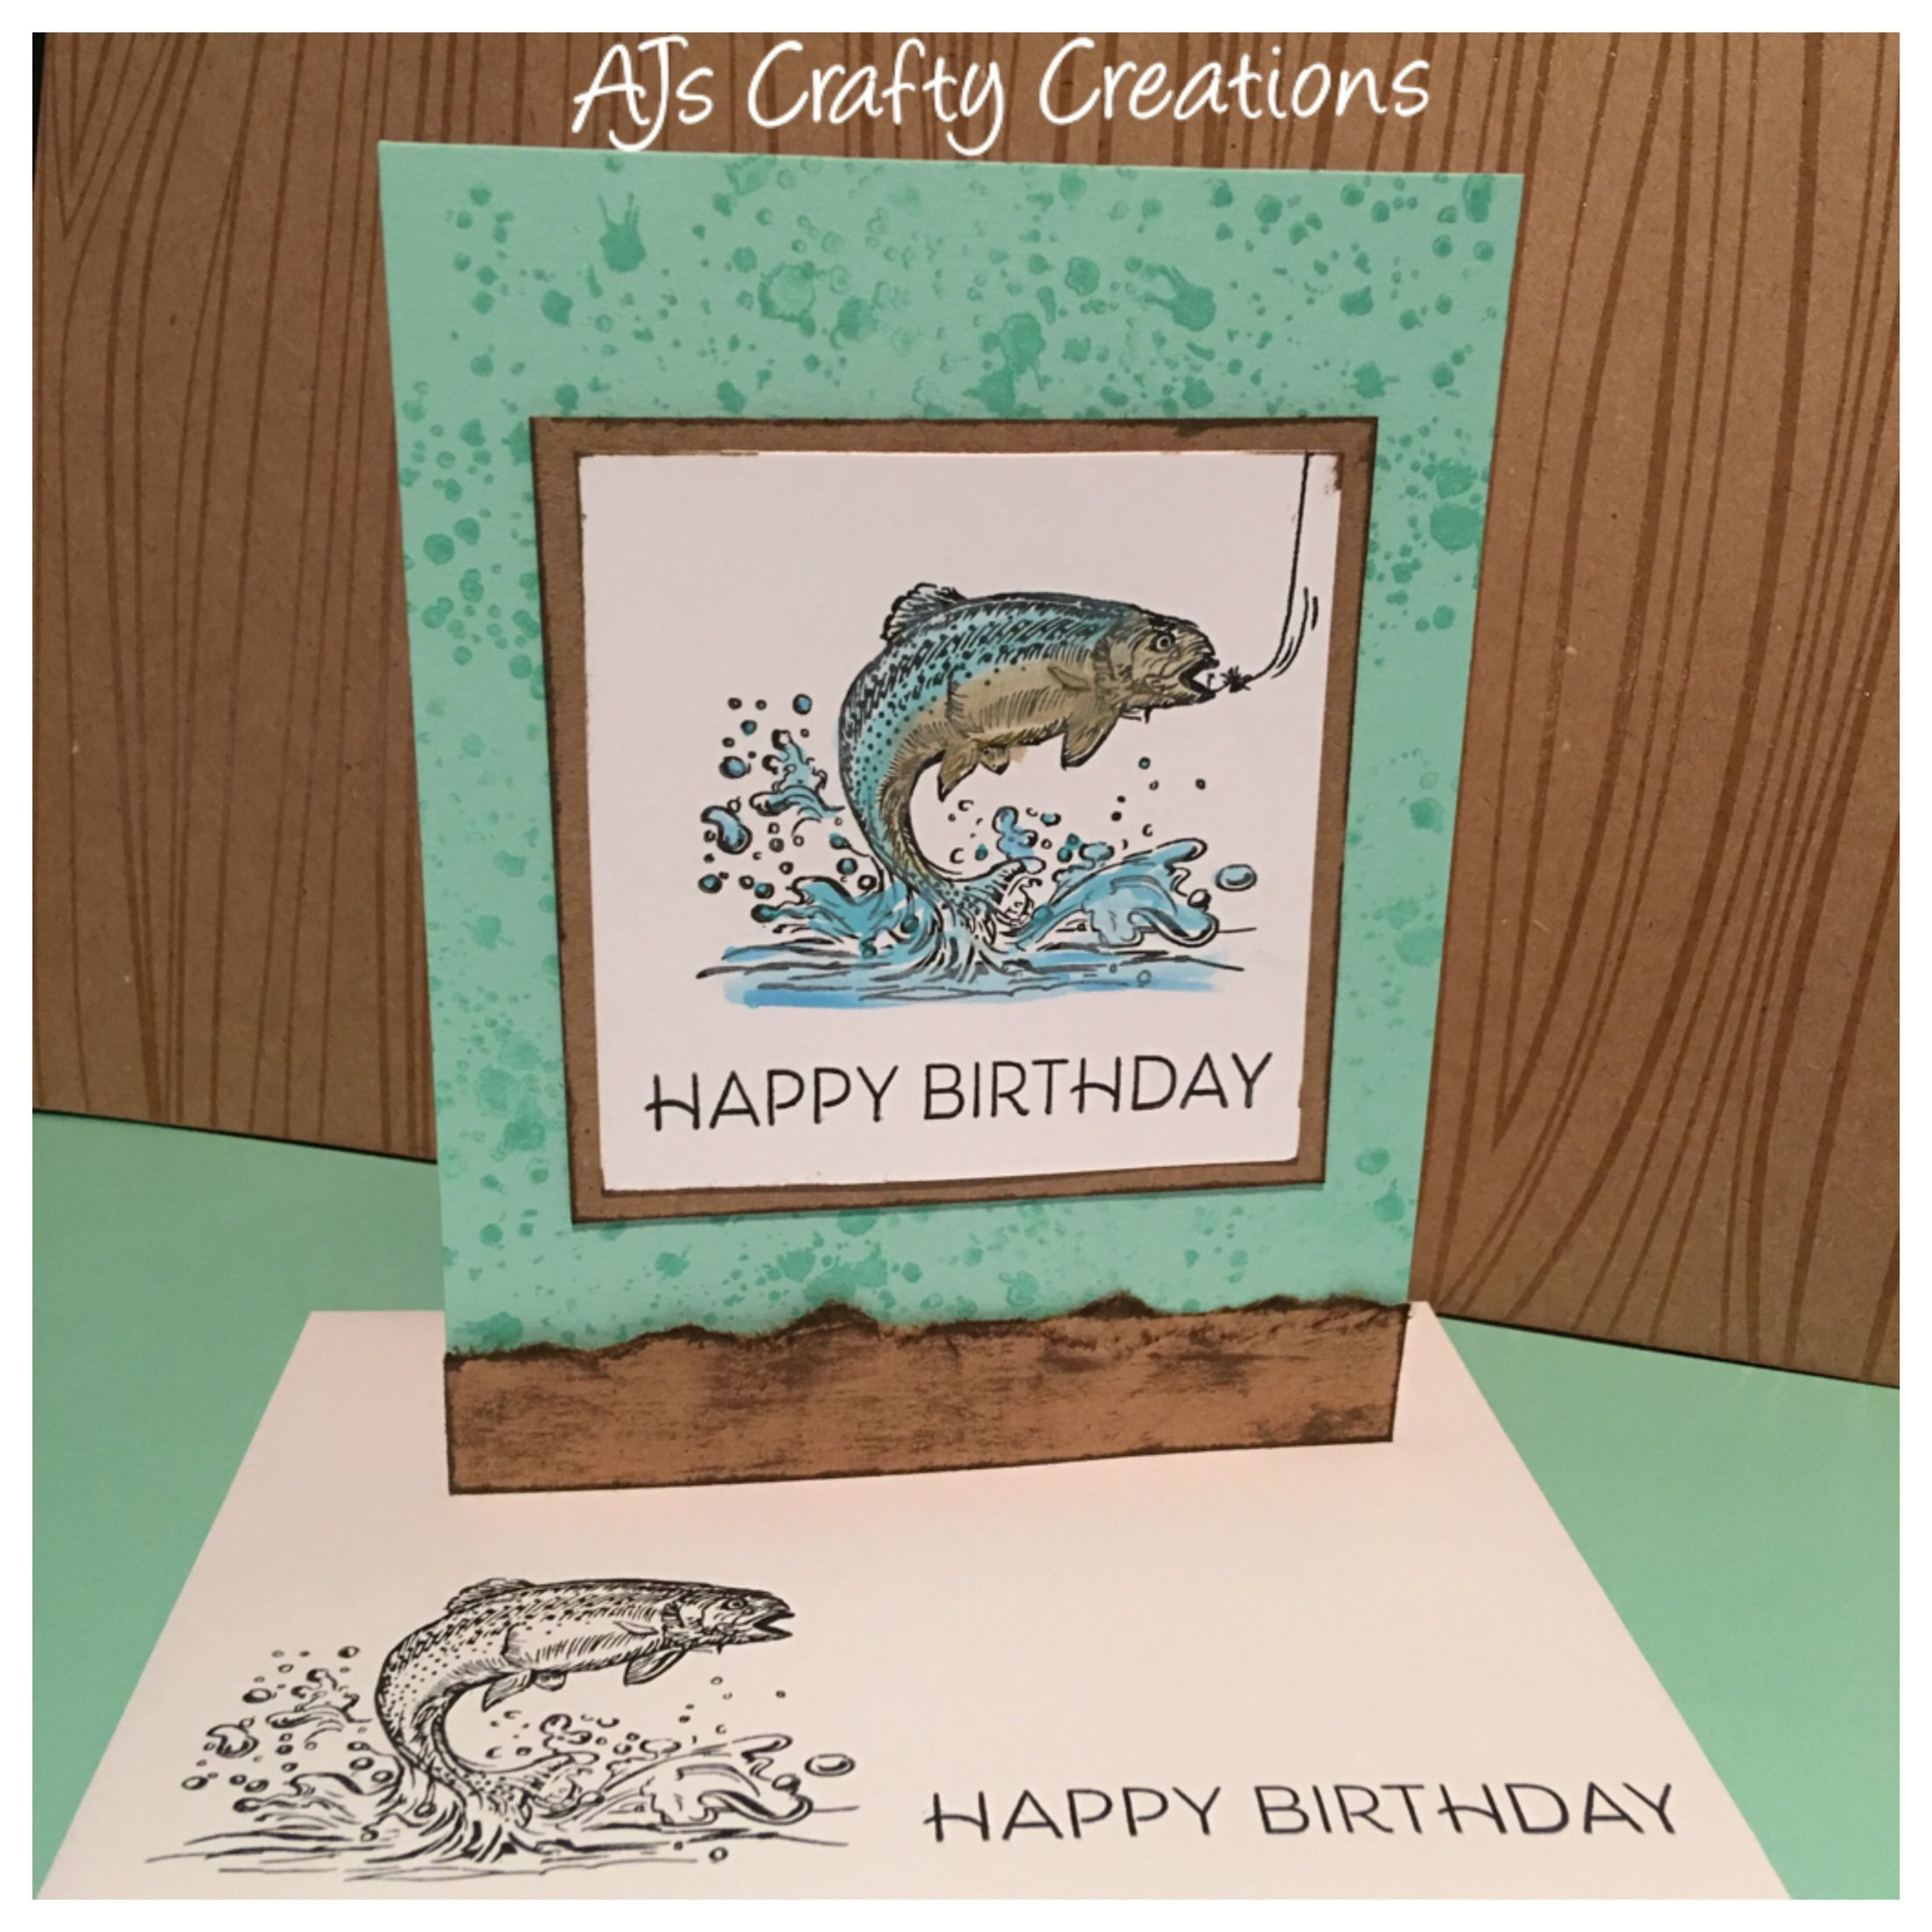 Ctmh Hooked On You Male Birthday Card Masculine Birthday Cards Birthday Cards For Men Ctmh Cards